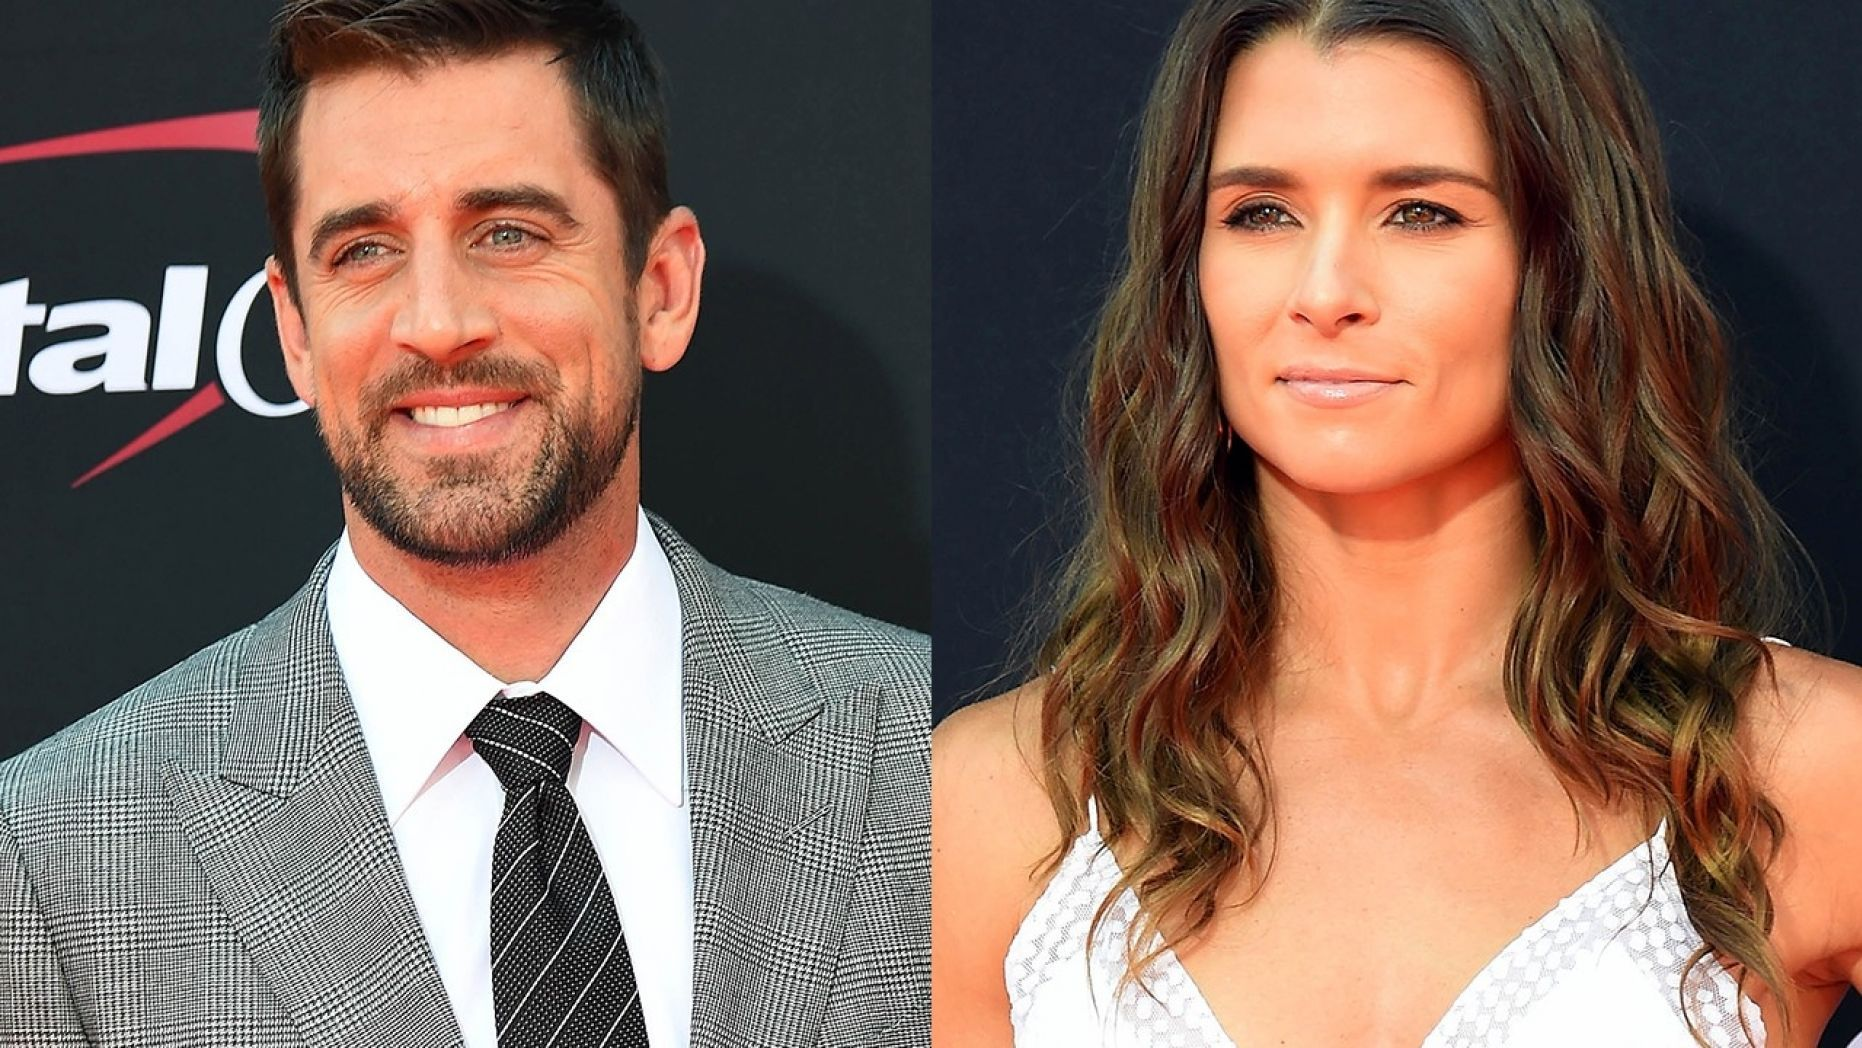 Danica Patrick Aaron Rodgers Romance Heating Up Report Says Danica Patrick Aaron Rodgers Aaron